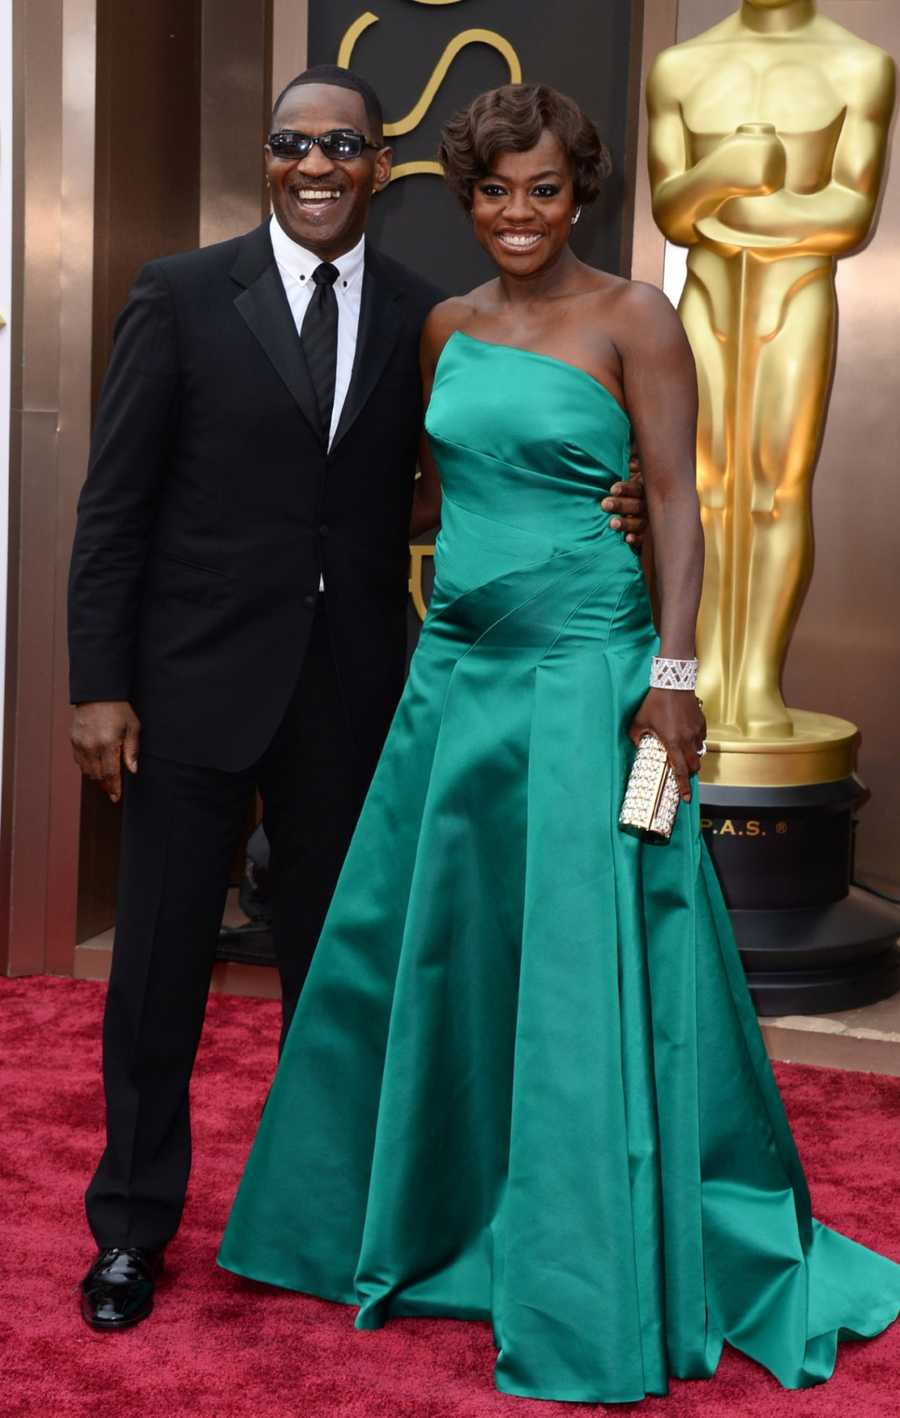 Actress Viola Davis and Julius Tennon